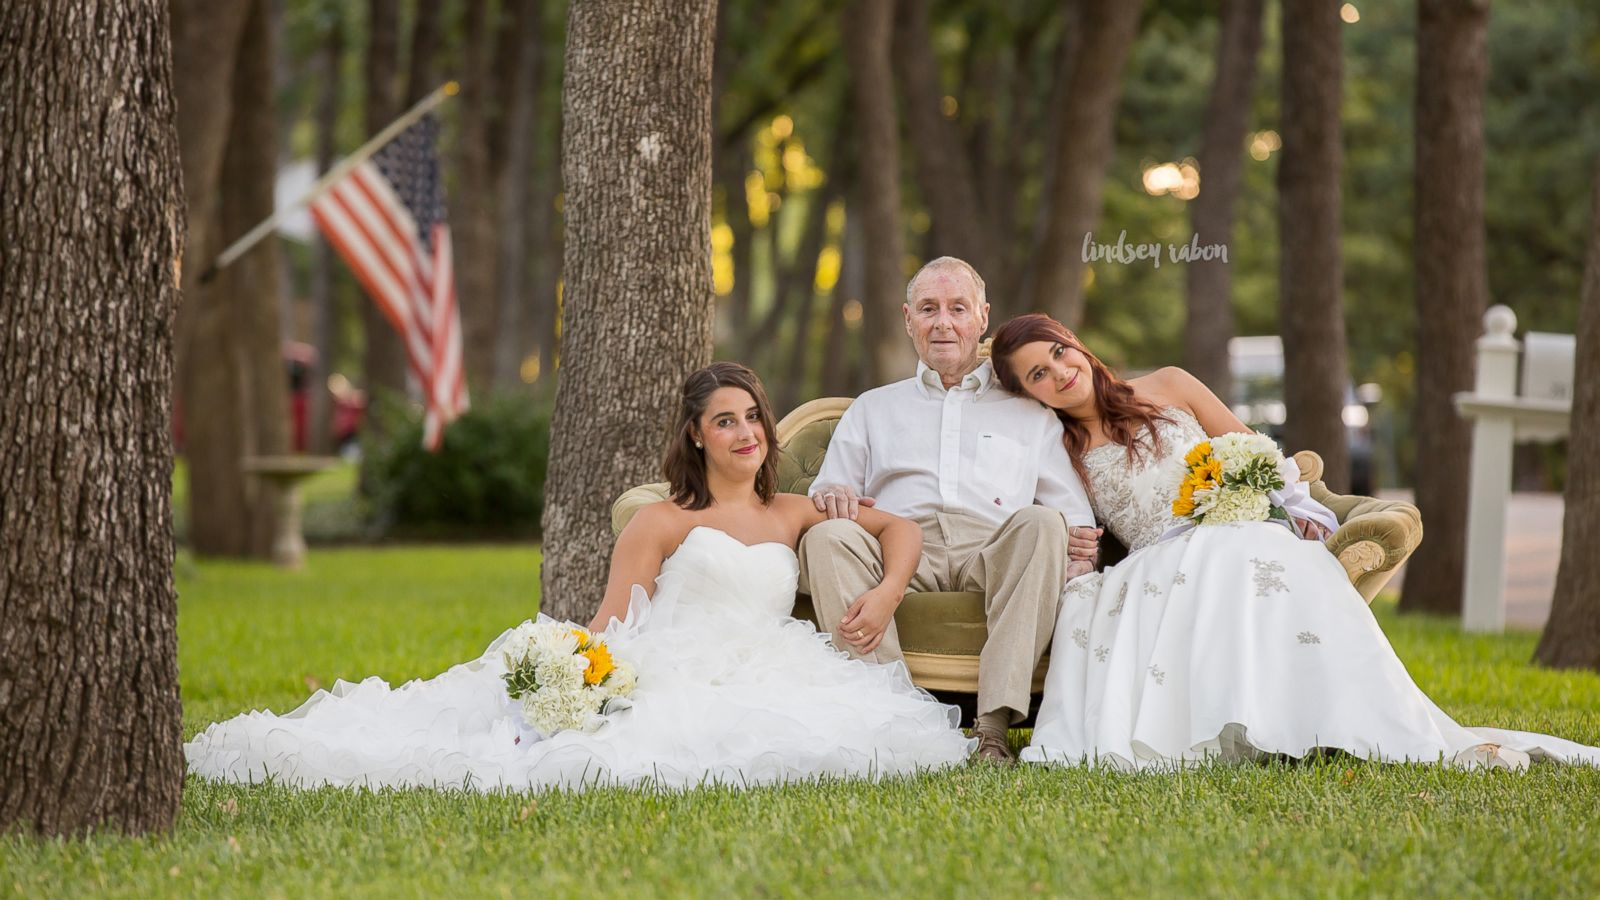 Twin Sisters Stage Wedding Photo Shoot With Their Alzheimers-Afflicted Dad